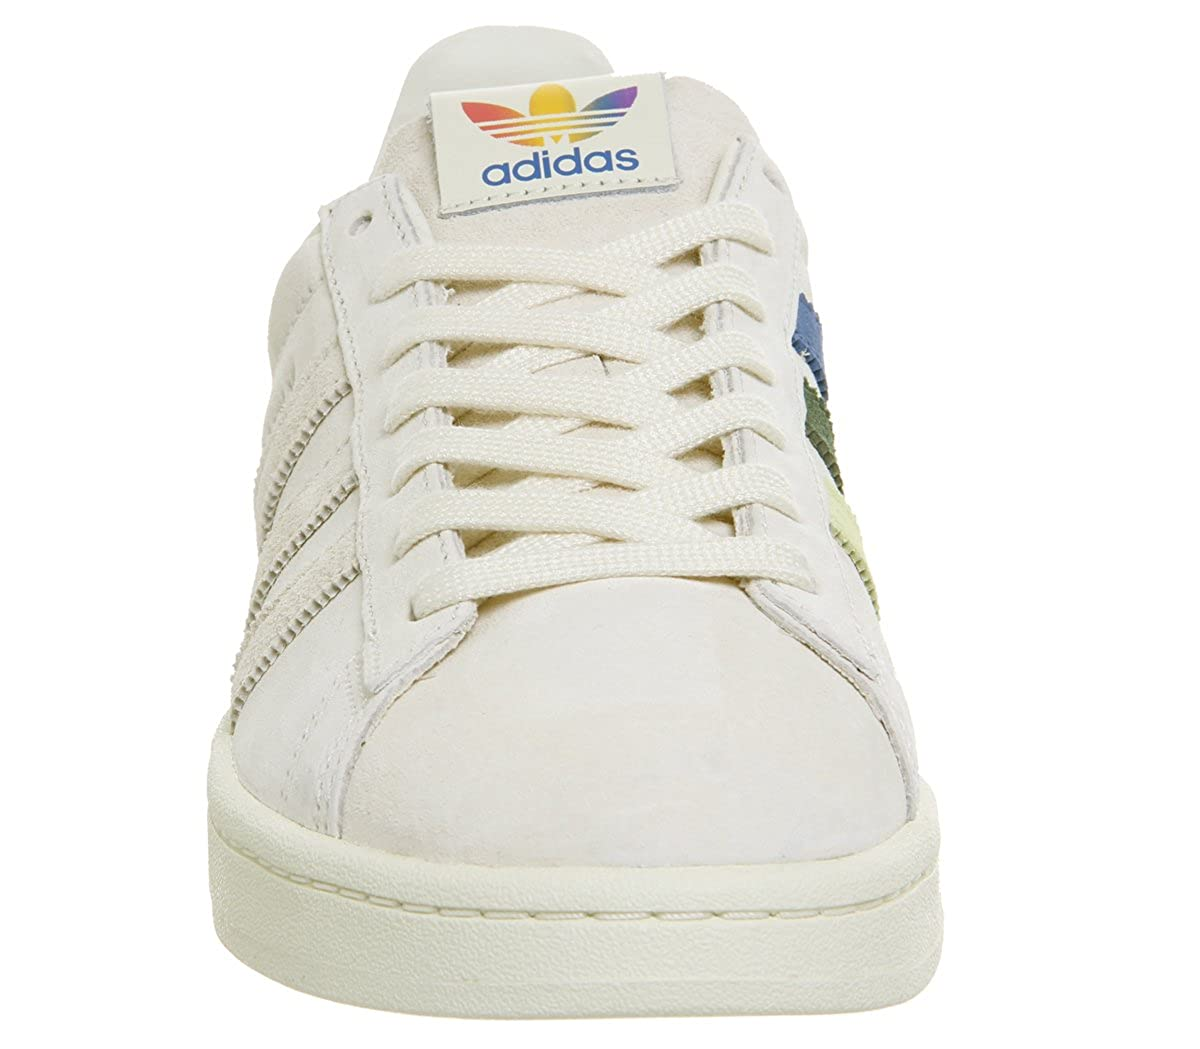 new arrival 5657b 63cd8 Amazon.com  adidas Originals Campus Pride Cream WhiteTrace PinkTrace  Scarlet Suede Adult Trainers Shoes  Fashion Sneakers